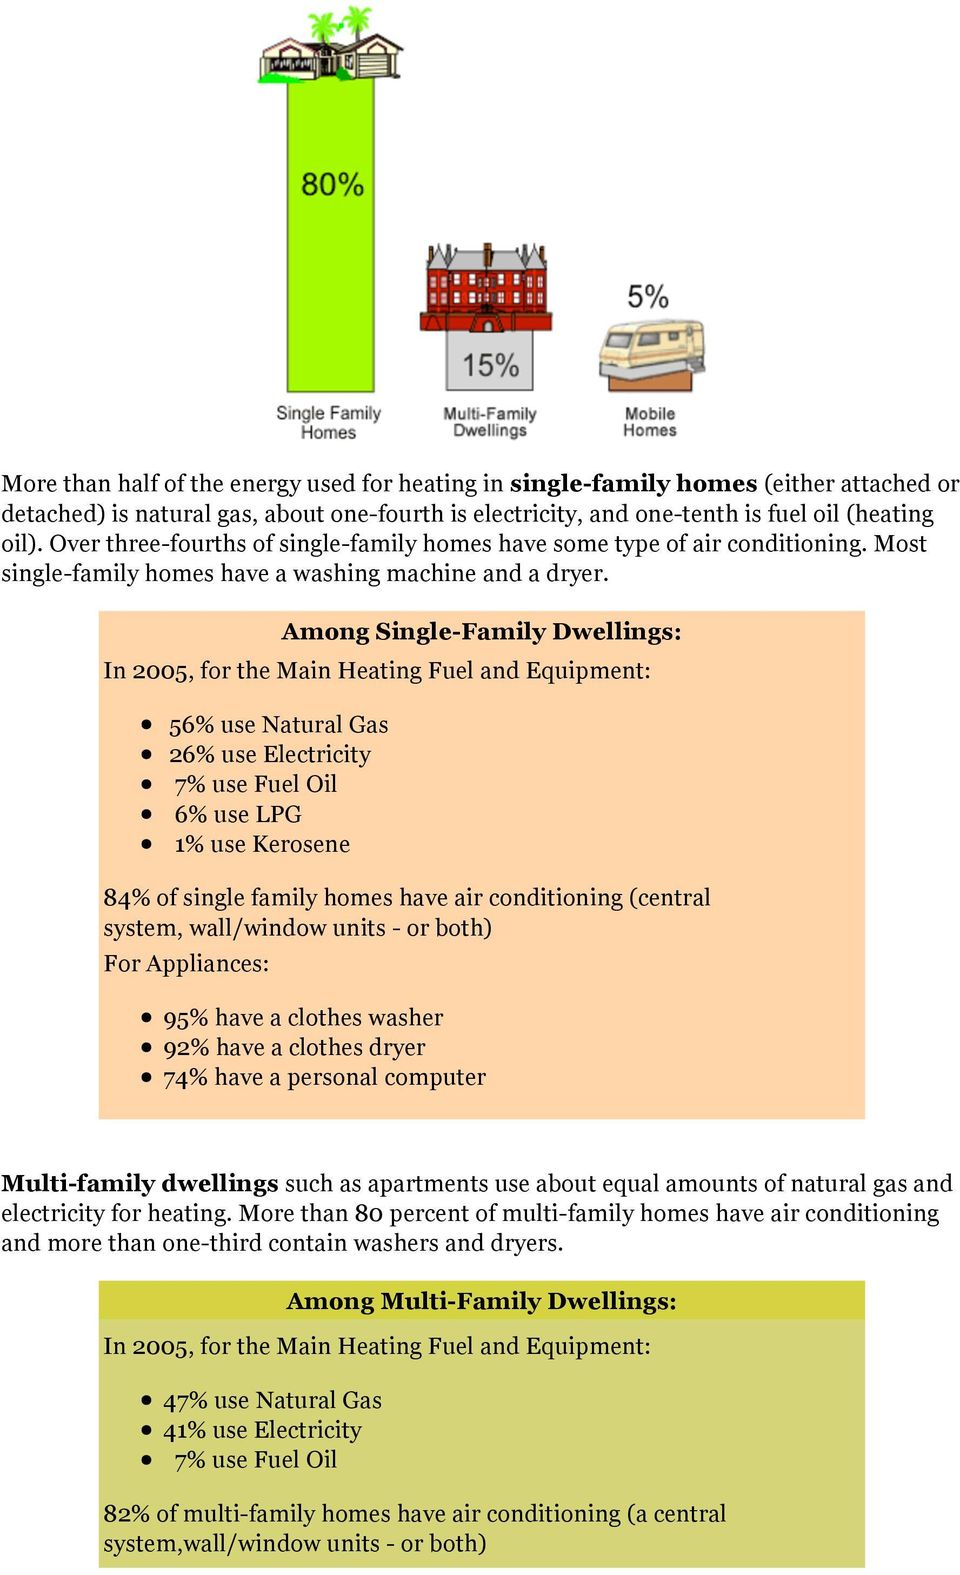 Among Single-Family Dwellings: In 2005, for the Main Heating Fuel and Equipment: 56% use Natural Gas 26% use Electricity 7% use Fuel Oil 6% use LPG 1% use Kerosene 84% of single family homes have air